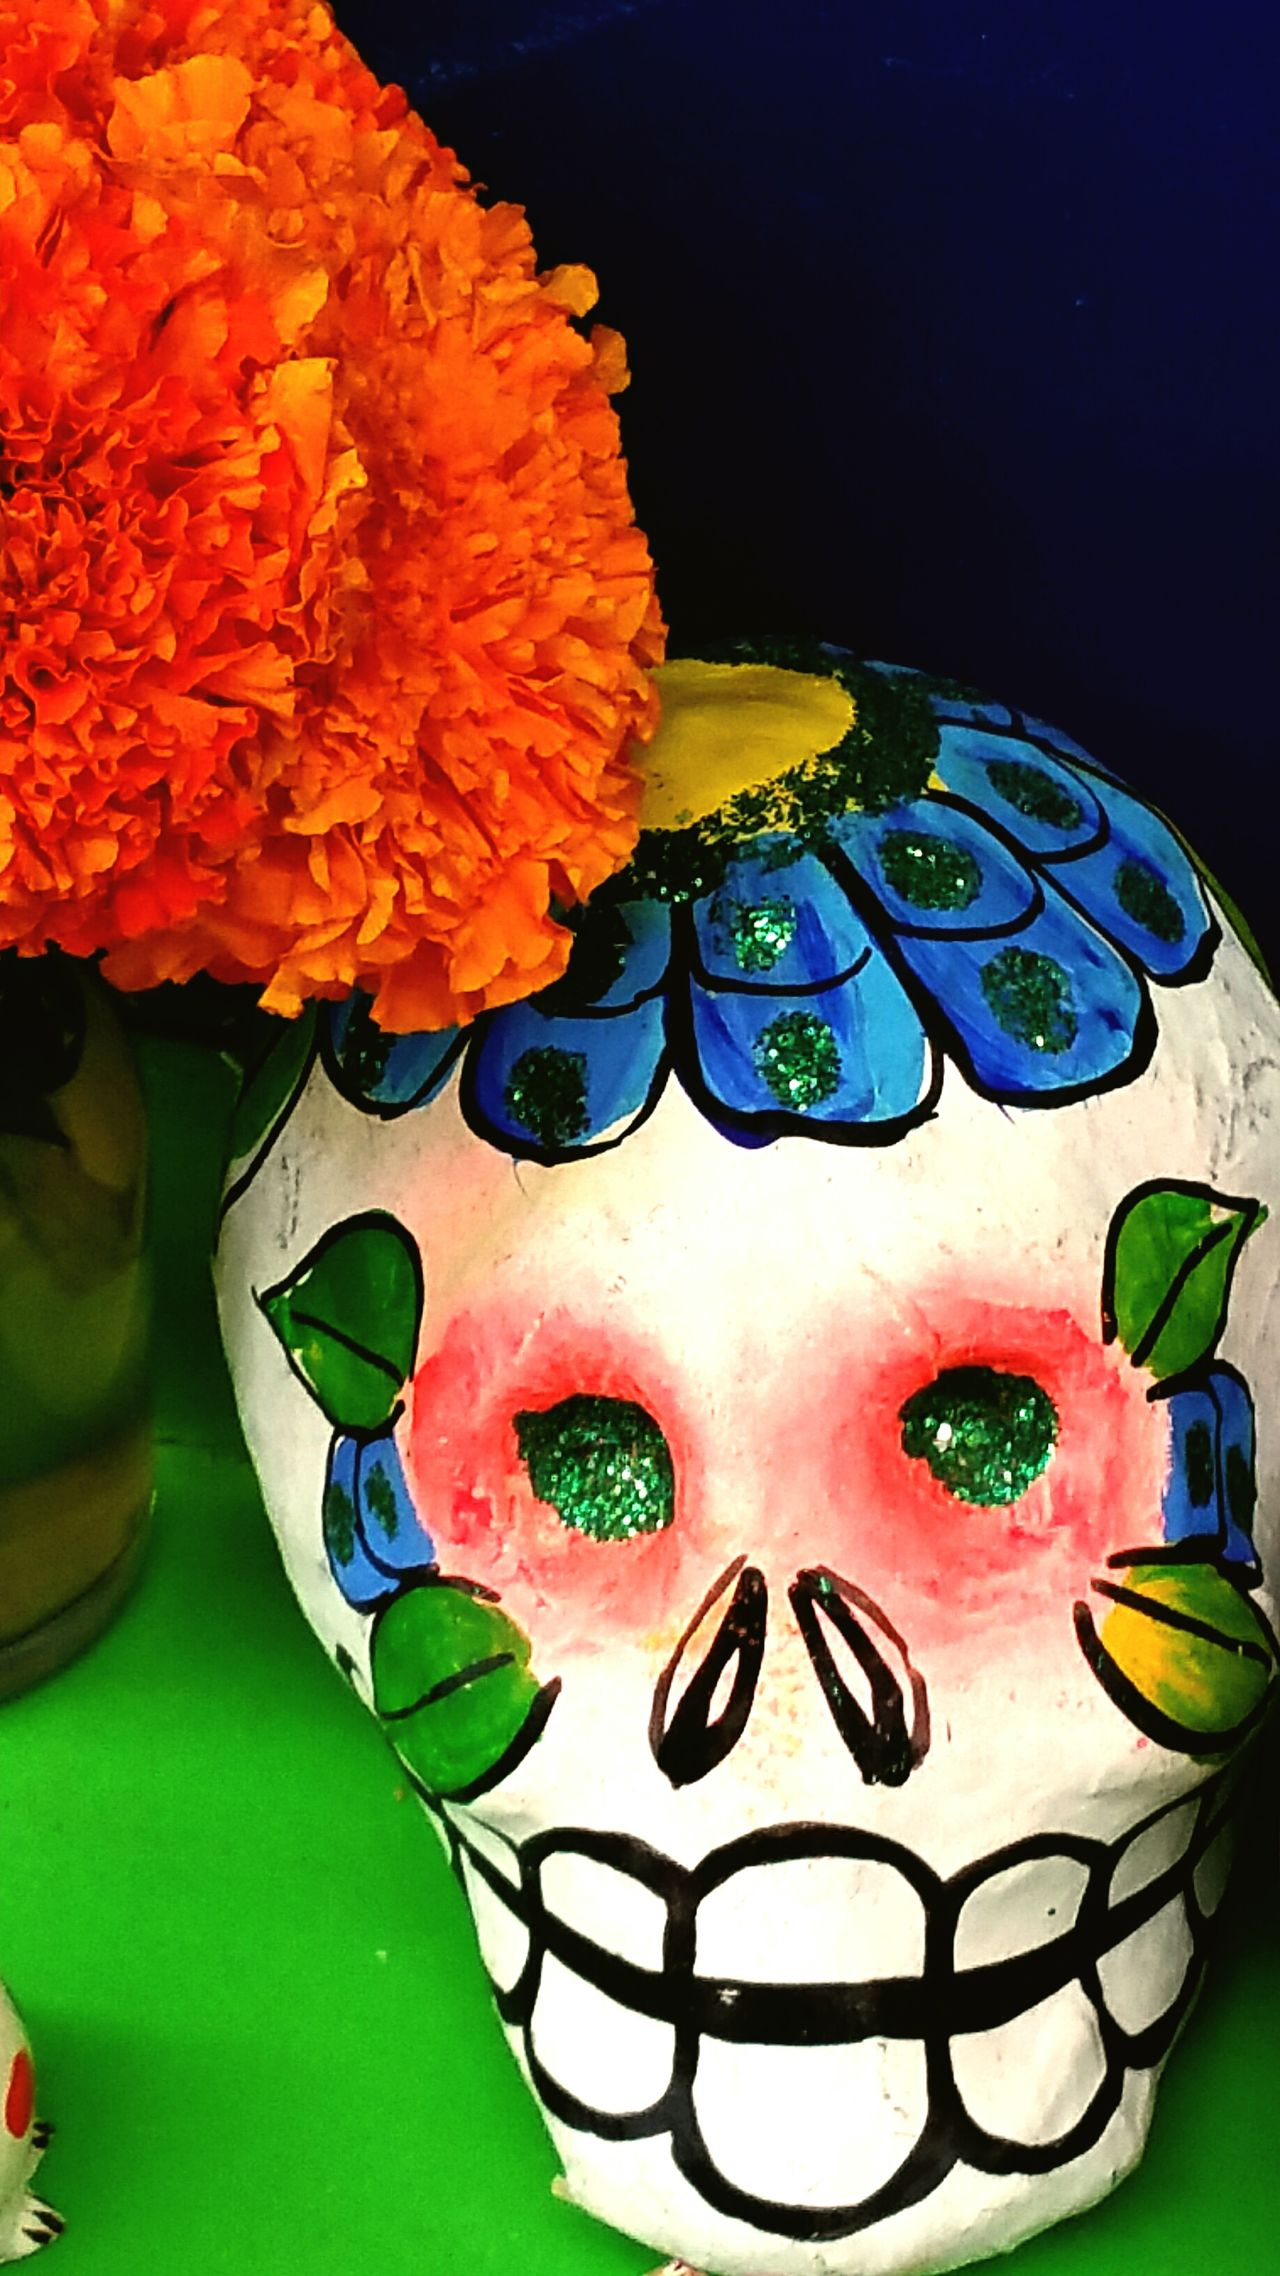 Dia De Los Muertos Calavera  Skull Cempasúchil Mums Day Of The Dead Mexico Mexican Culture Culture Tradition November 2nd